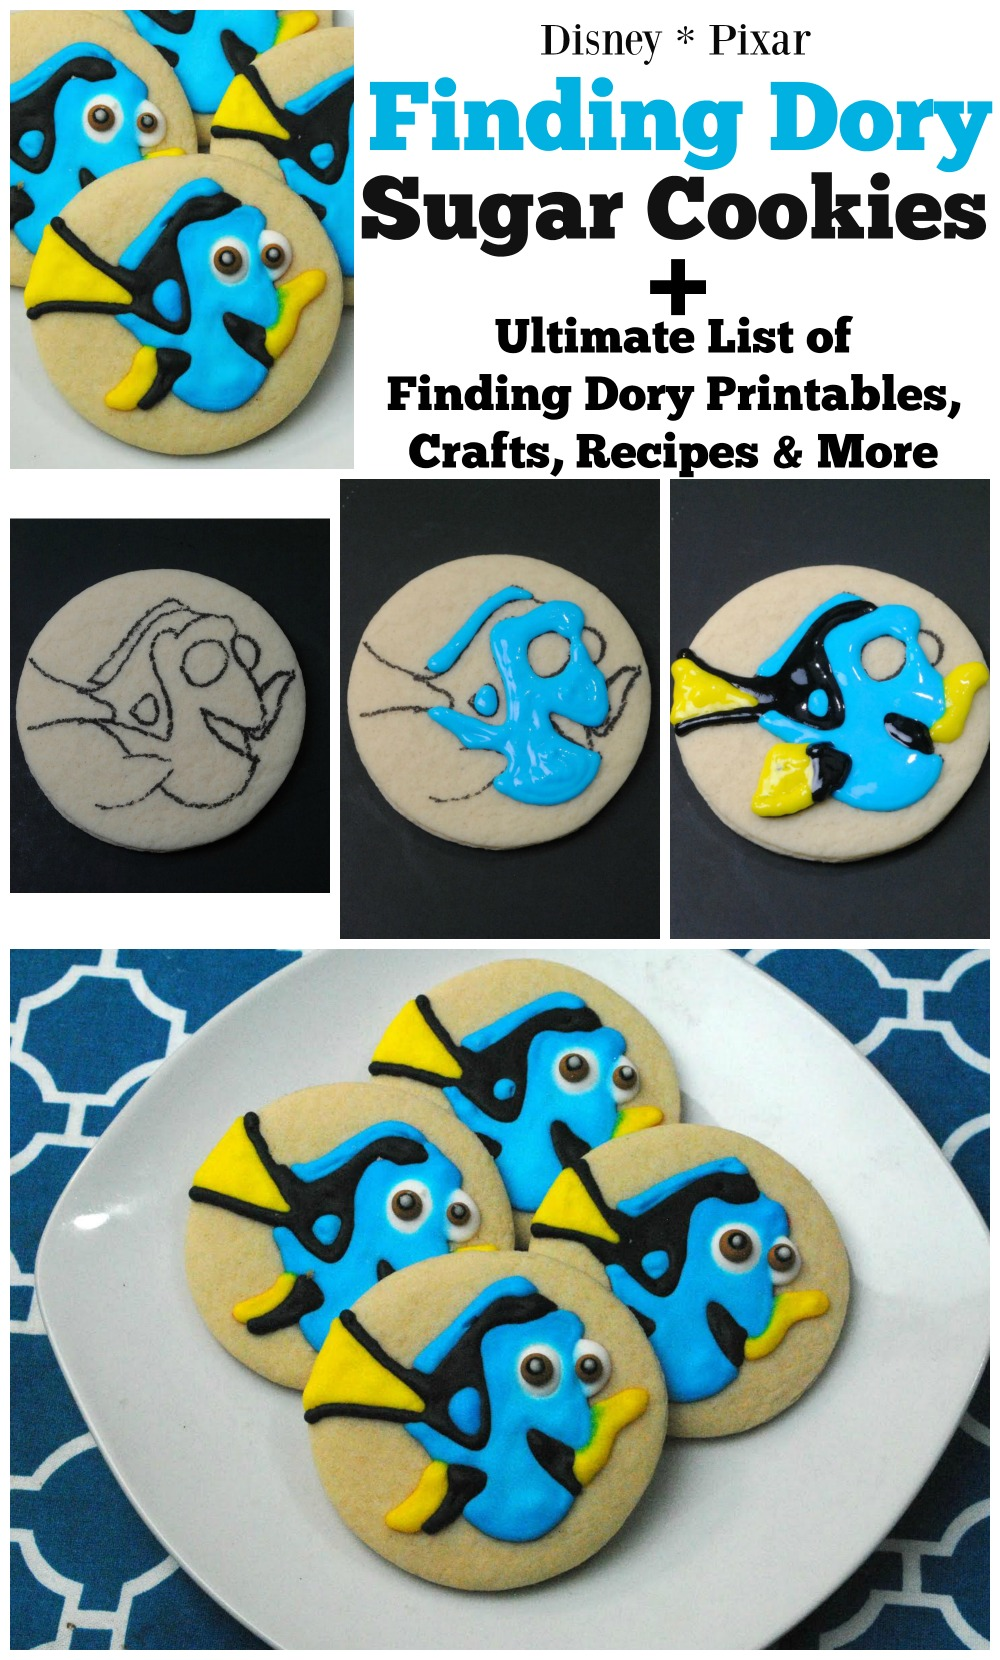 Disney Pixar Finding Dory Sugar Cookies Recipe